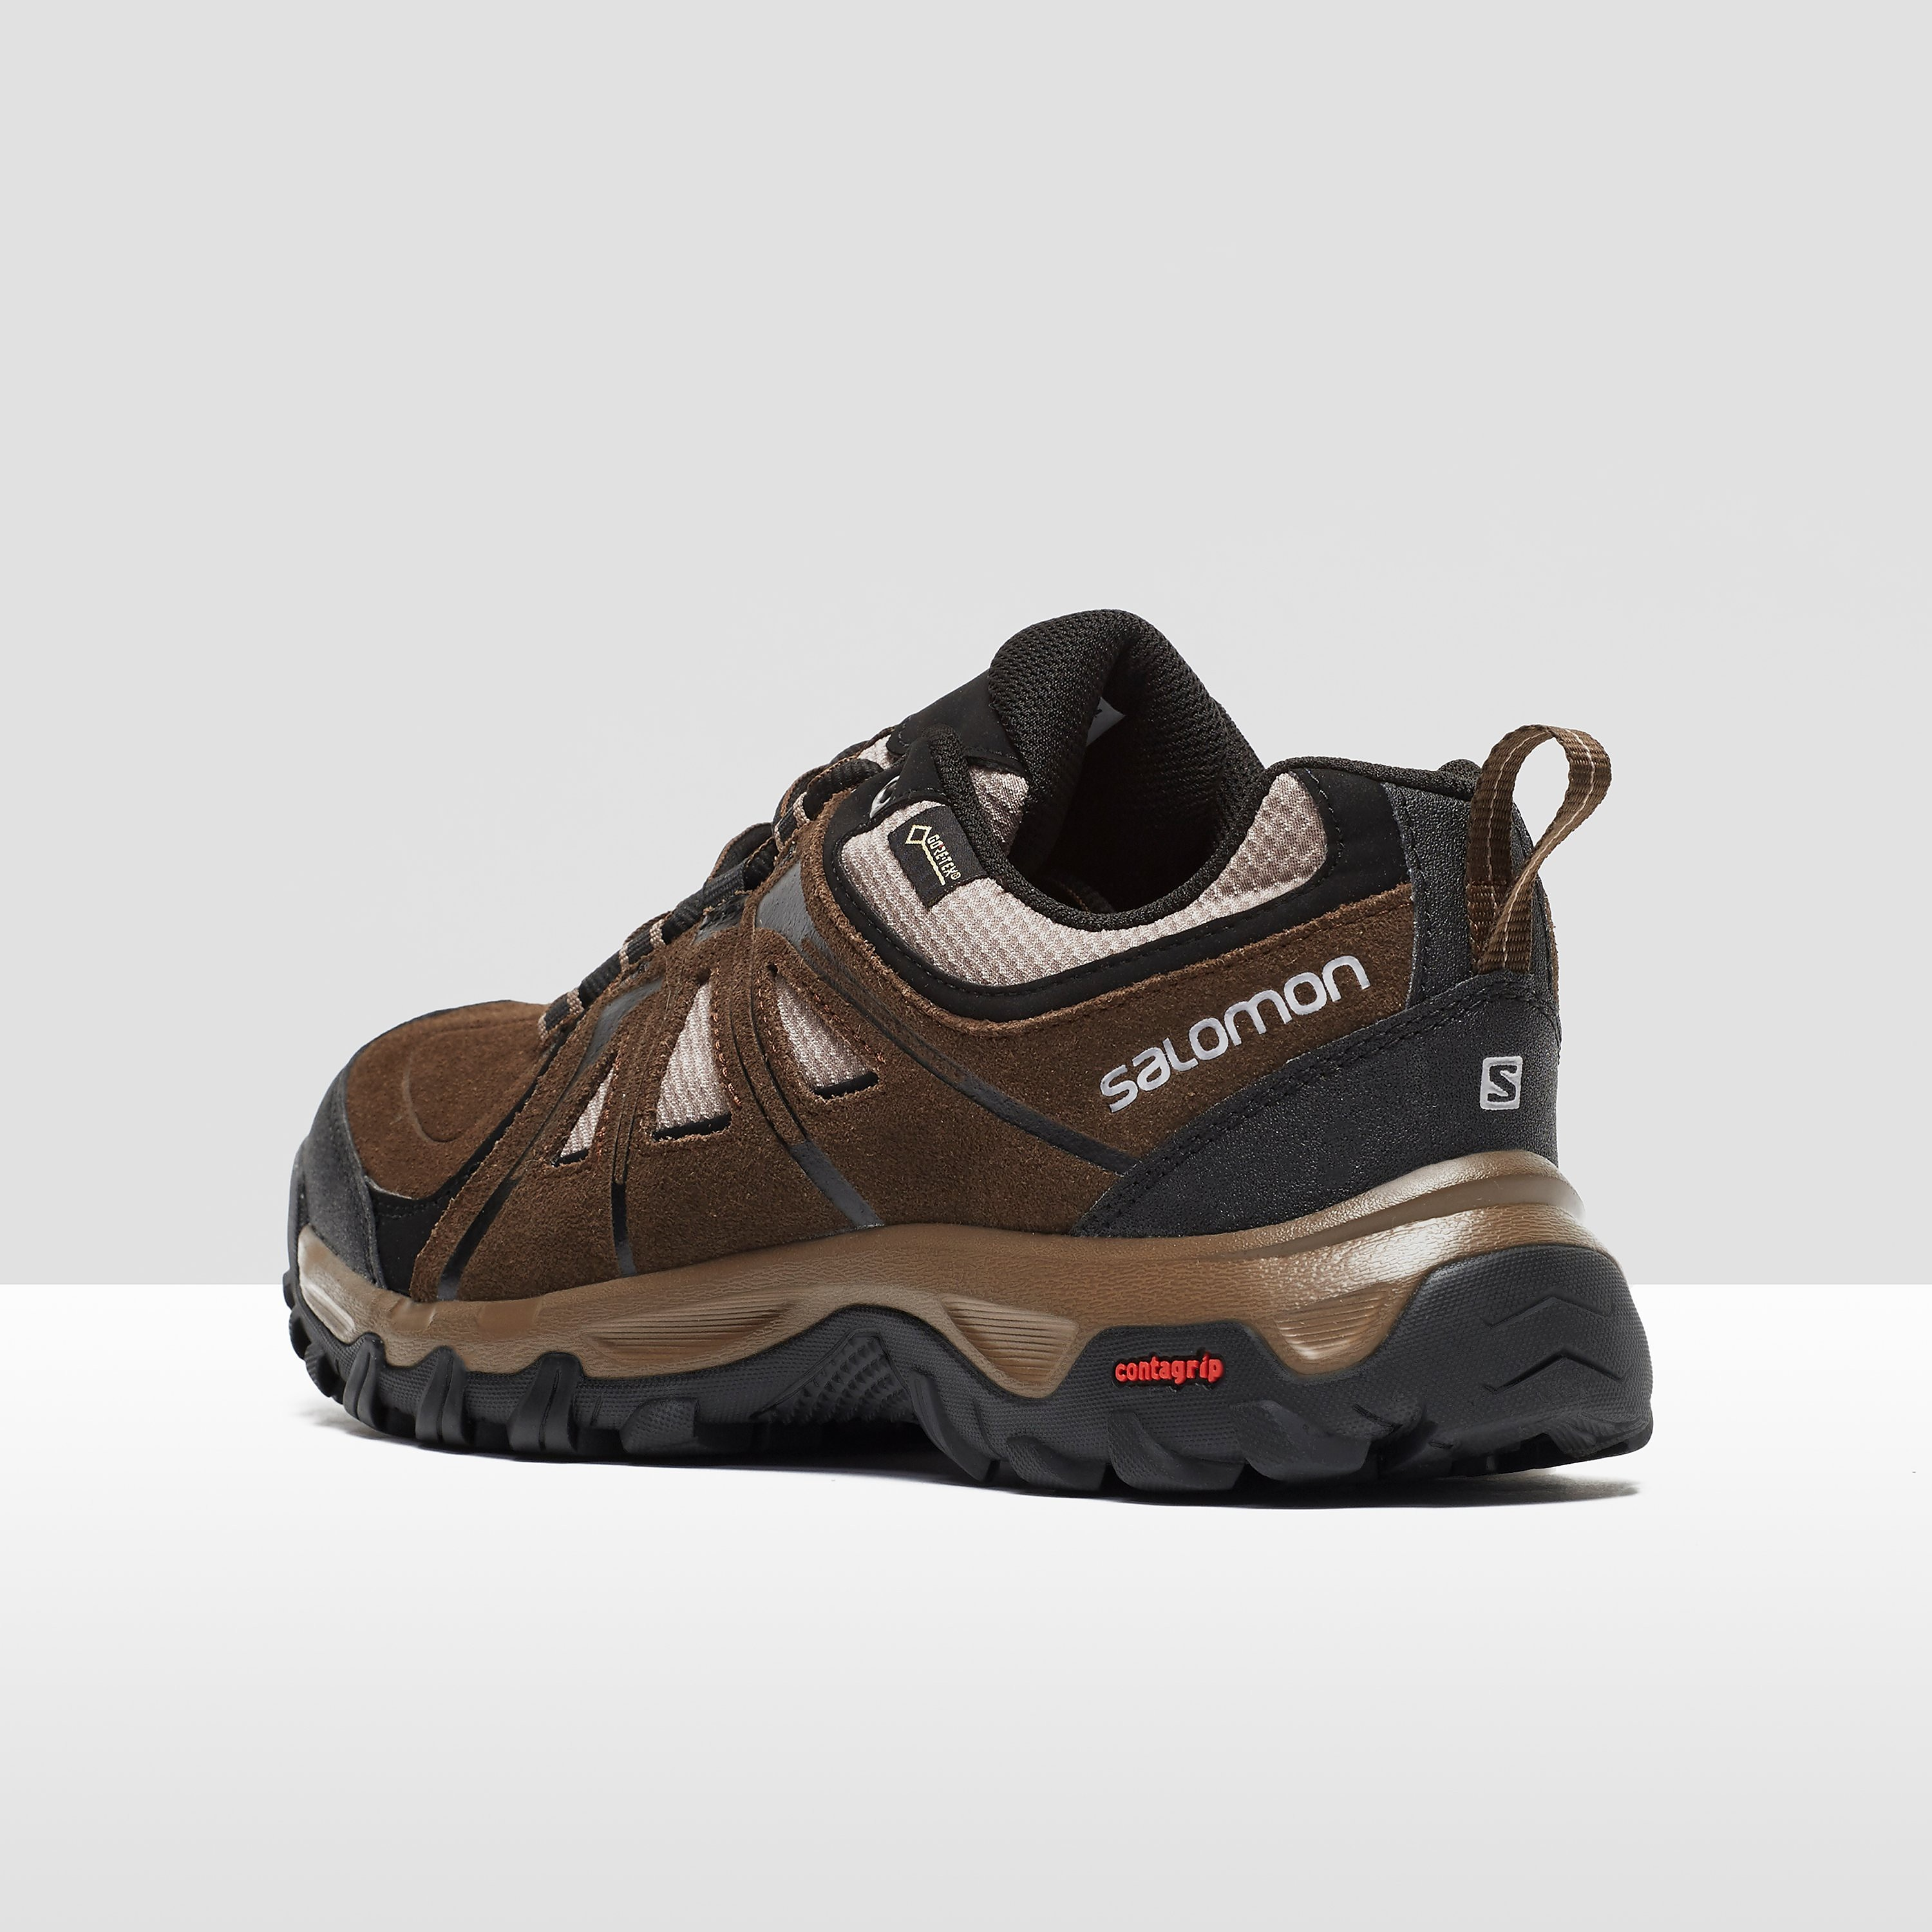 Salomon Evasion GTX Men's Hiking Shoes